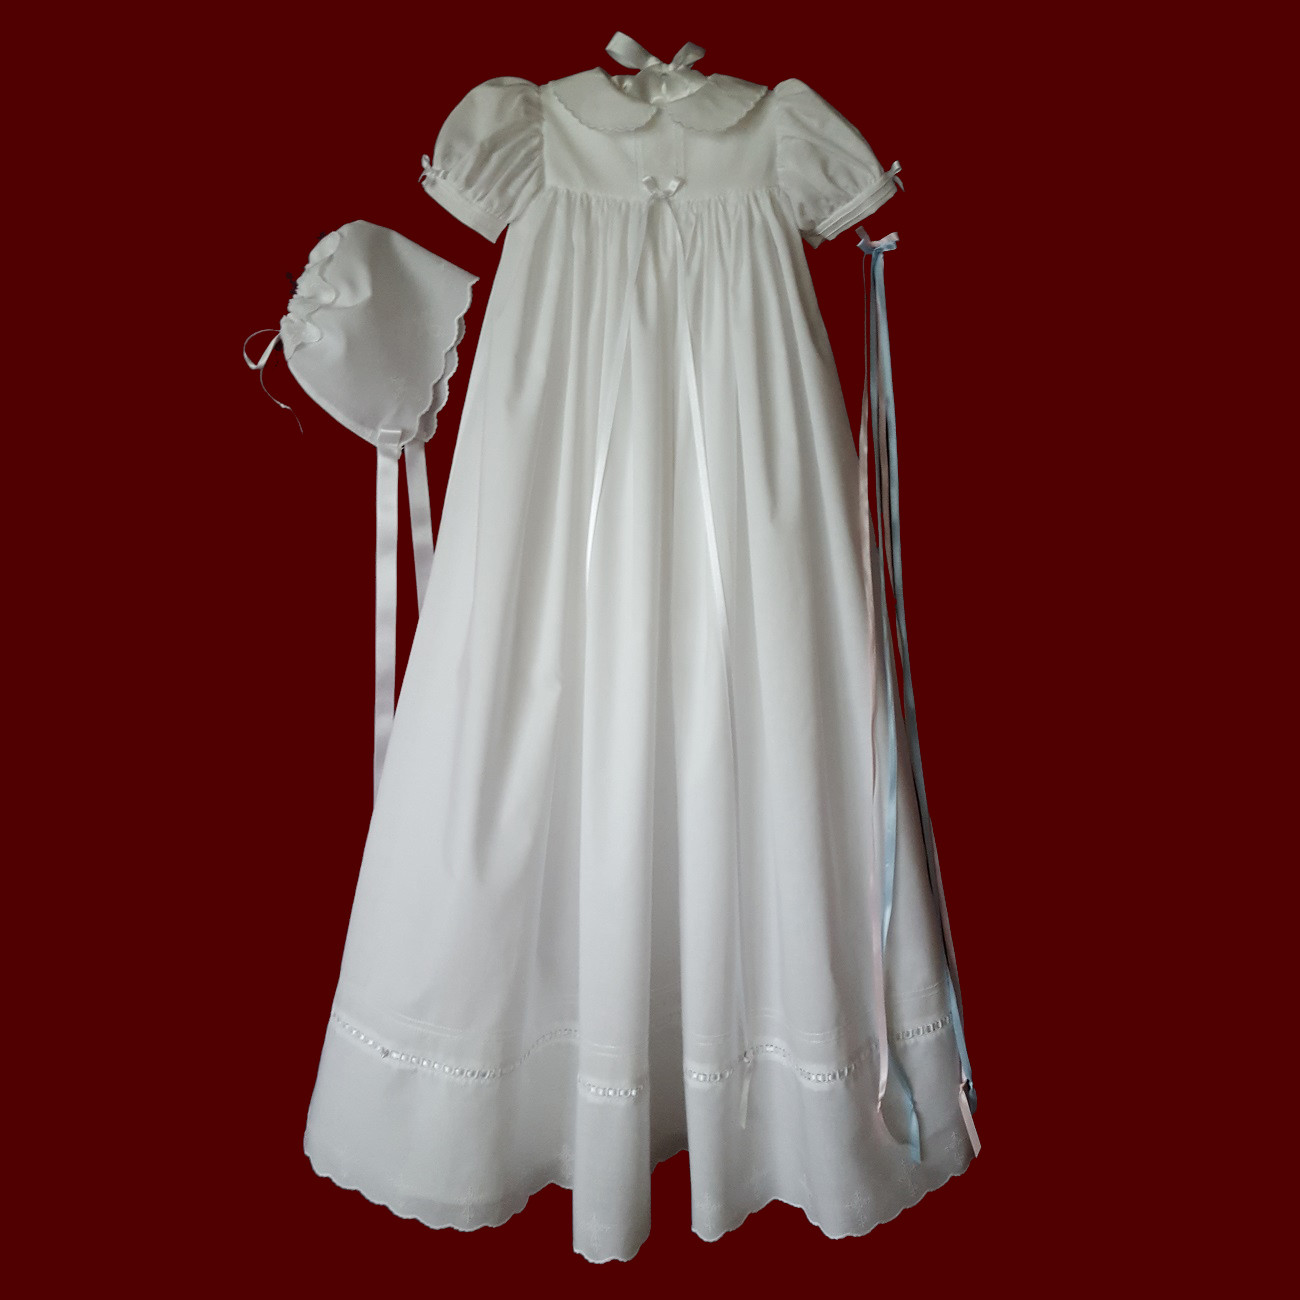 cf68c957b 100% Cotton Batiste Unisex Christening Gown with Embroidered Crosses ...